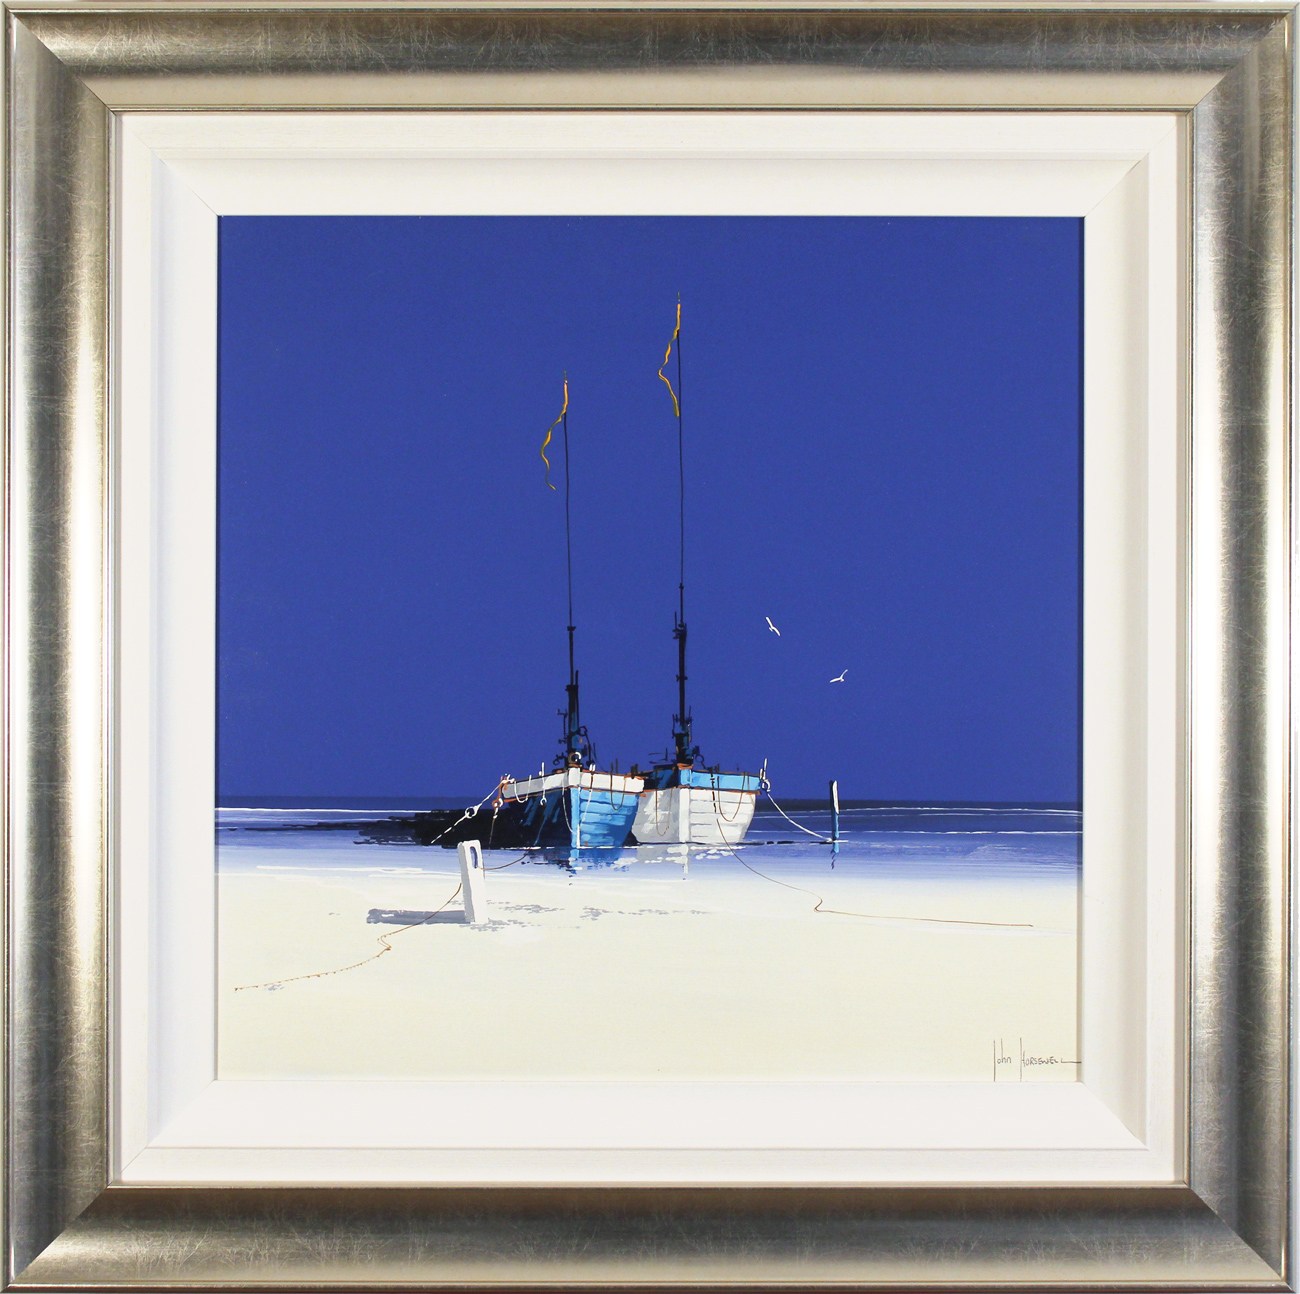 John Horsewell, Original acrylic painting on board, Pacific Dreams, click to enlarge